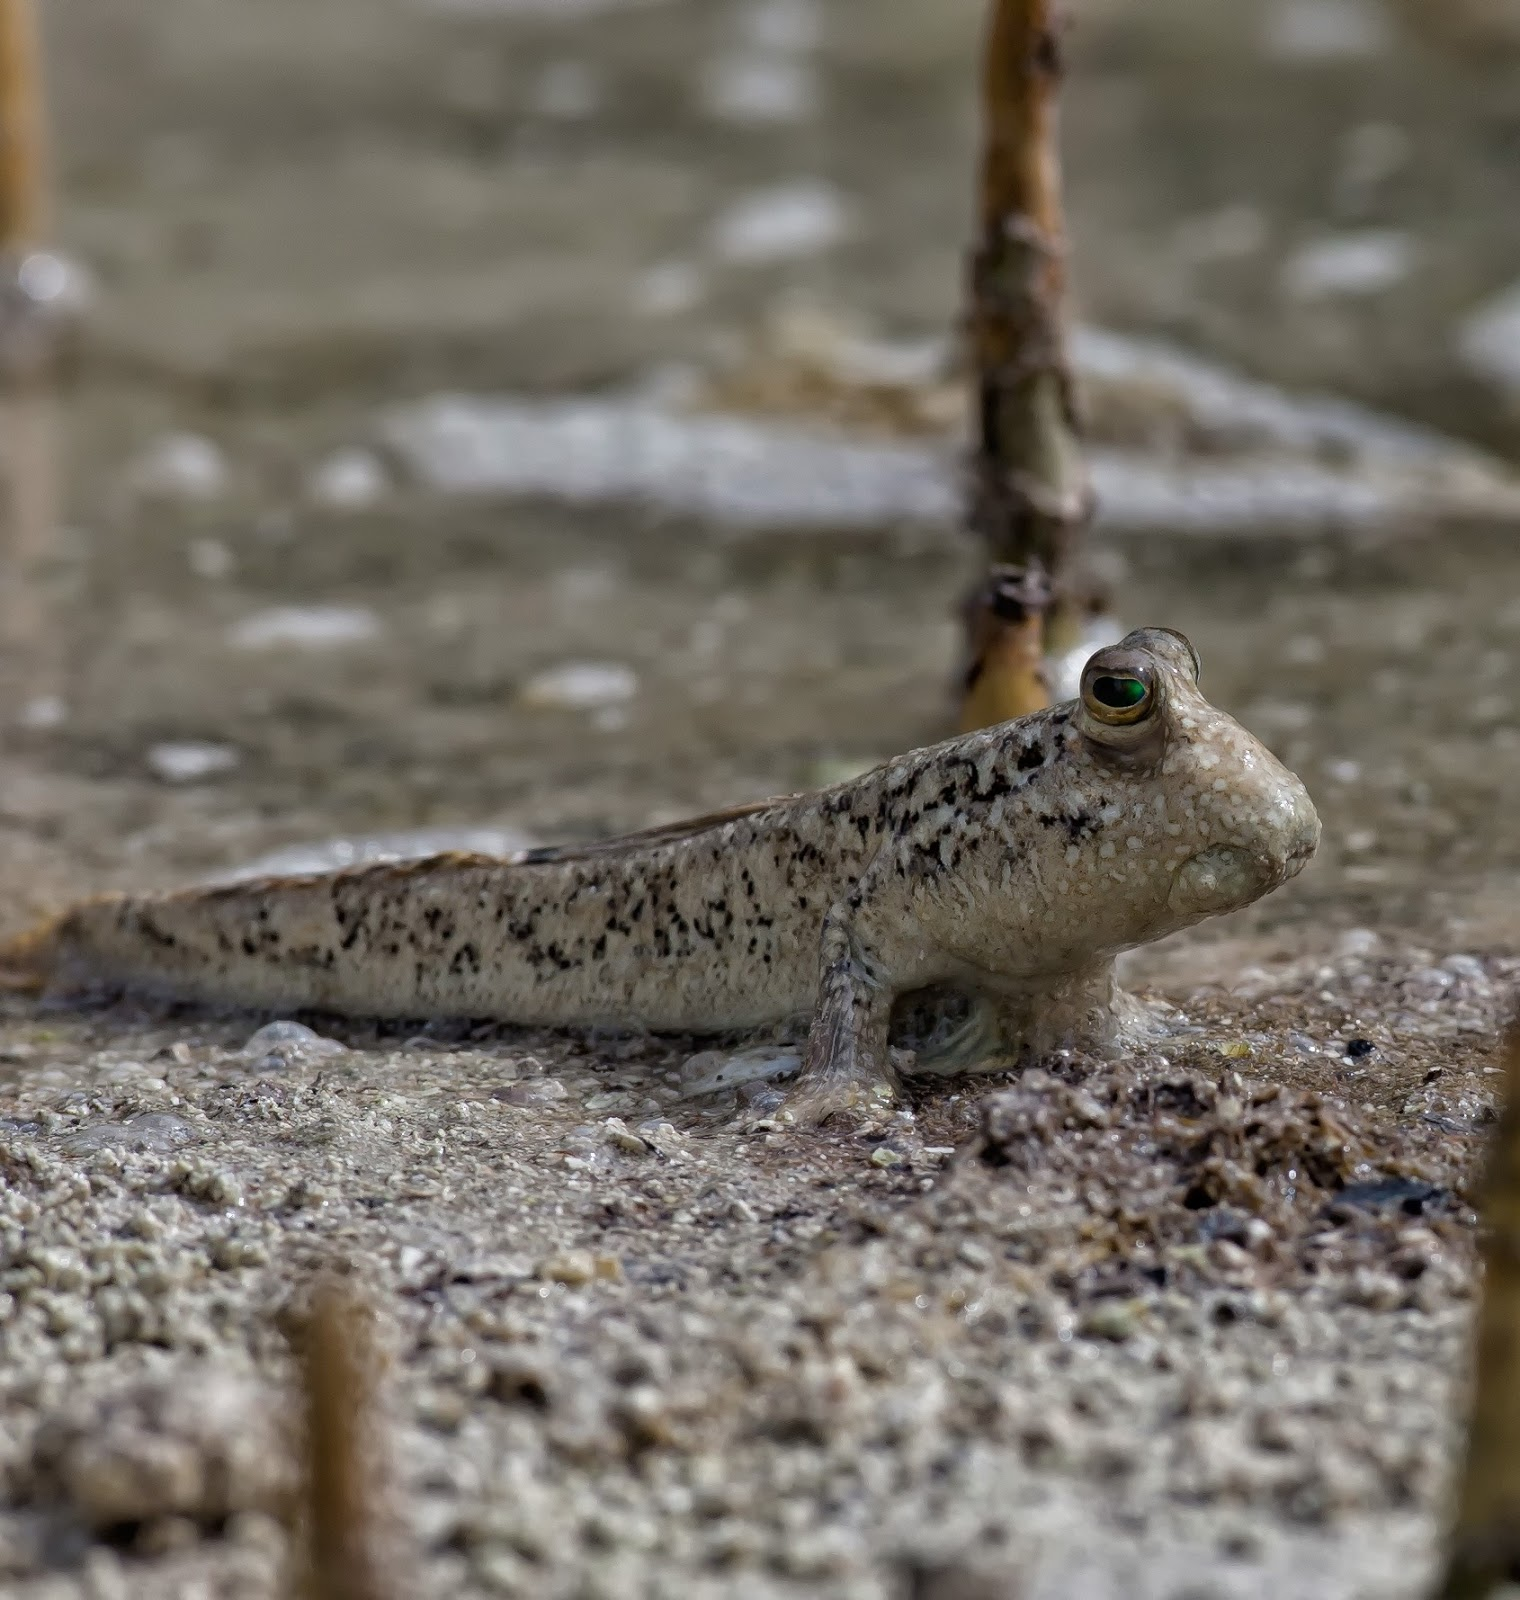 Mudskipper an unusual fish that can live and jump outside water.